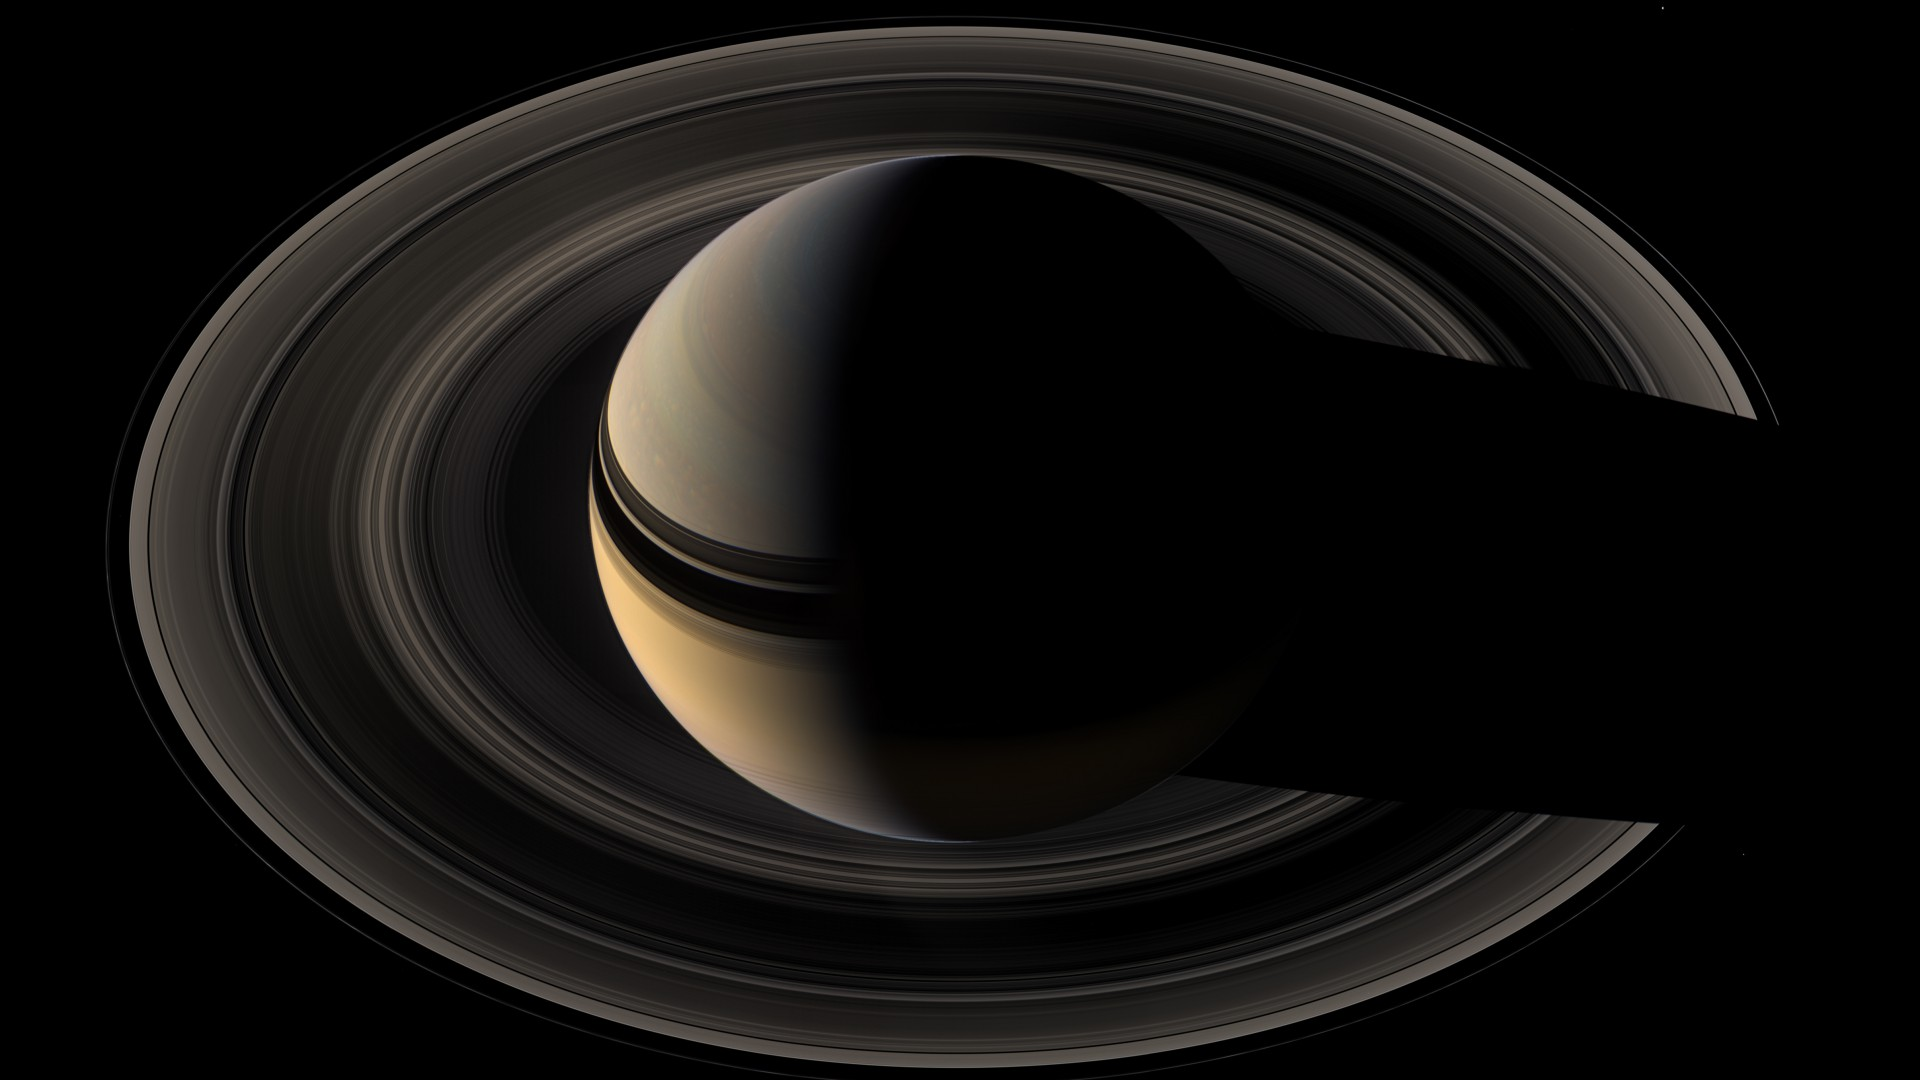 saturn, planet, space (horizontal)